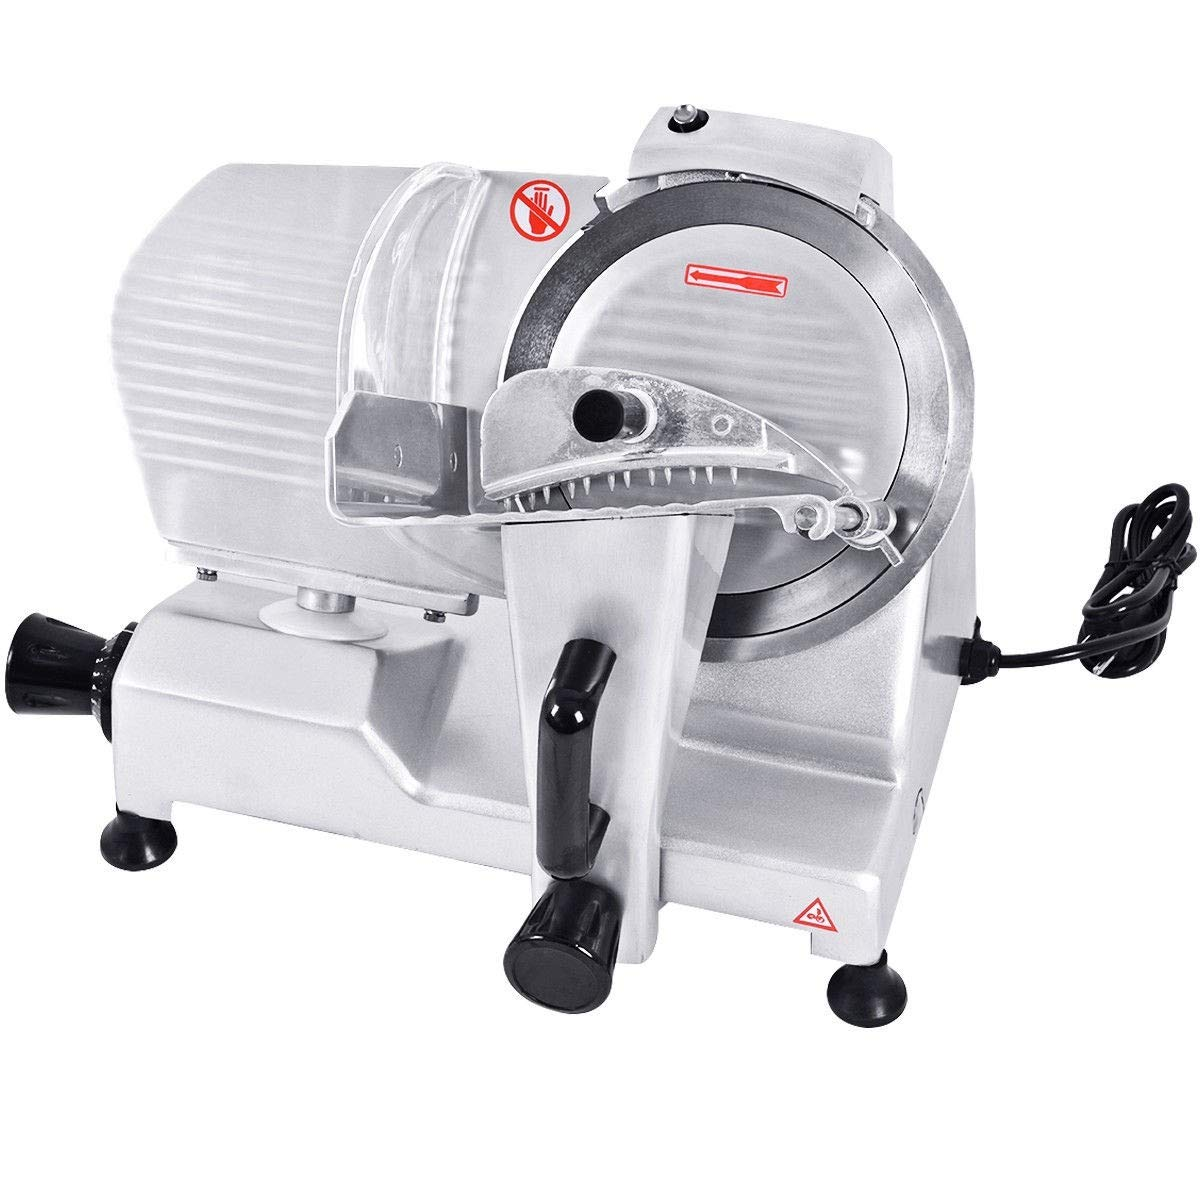 "zwan 9"" Blade Commercial Meat Slicer Deli Meat Cheese Food Slicer with Ebook"